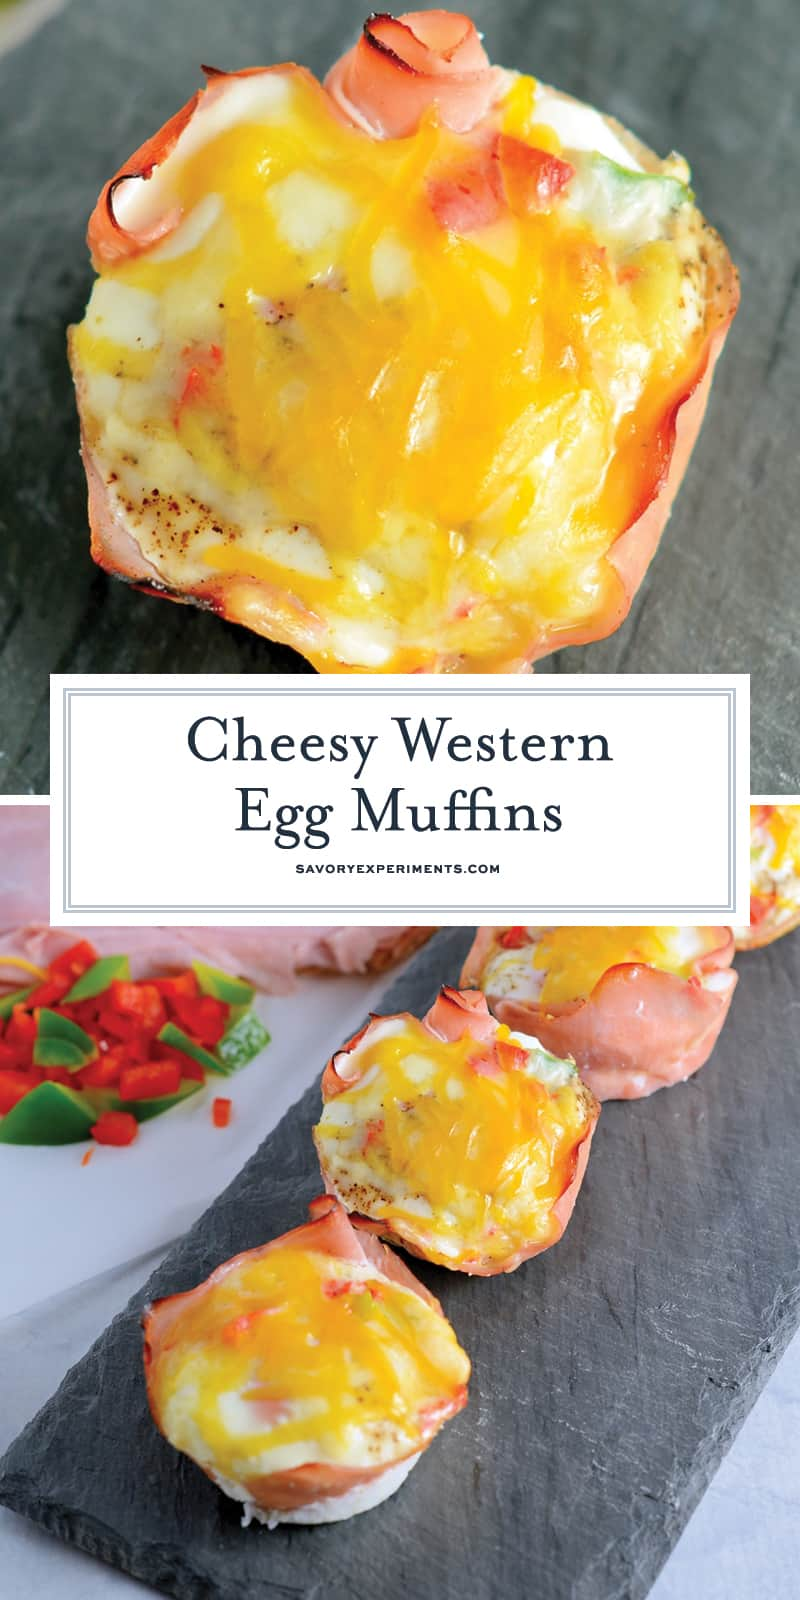 Get ready for these Western Egg Muffins to be your favorite type of Breakfast Eggs. Whether you are eating these baked egg cups at home or on the road, they are sure to be delicious! #bakedeggcups #breakfasteggs #eggmuffins www.savoryexperiments.com